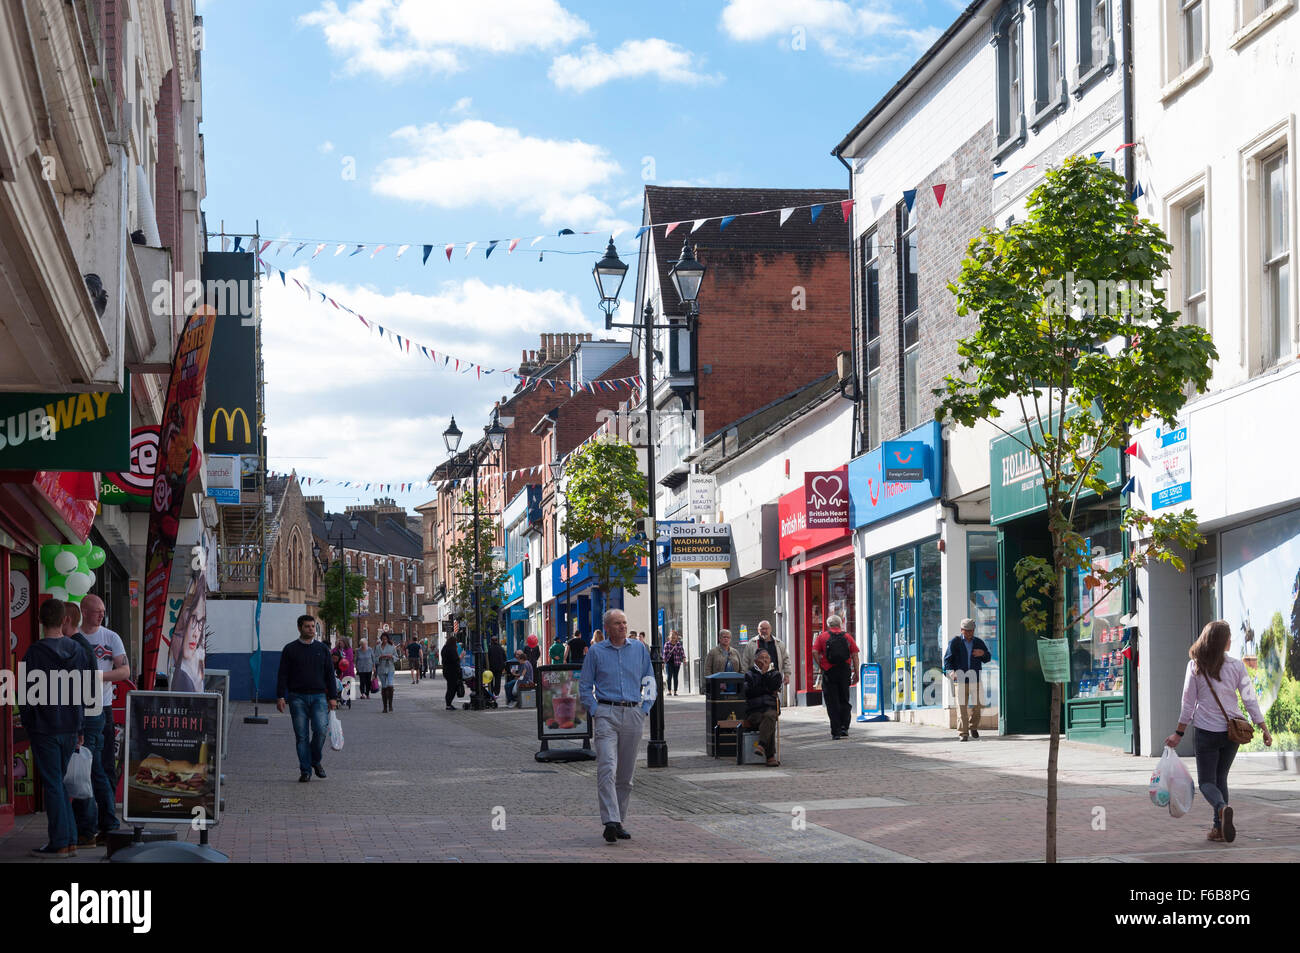 Pedestrianised Union Street, Aldershot, Hampshire, England, United Kingdom Stock Photo